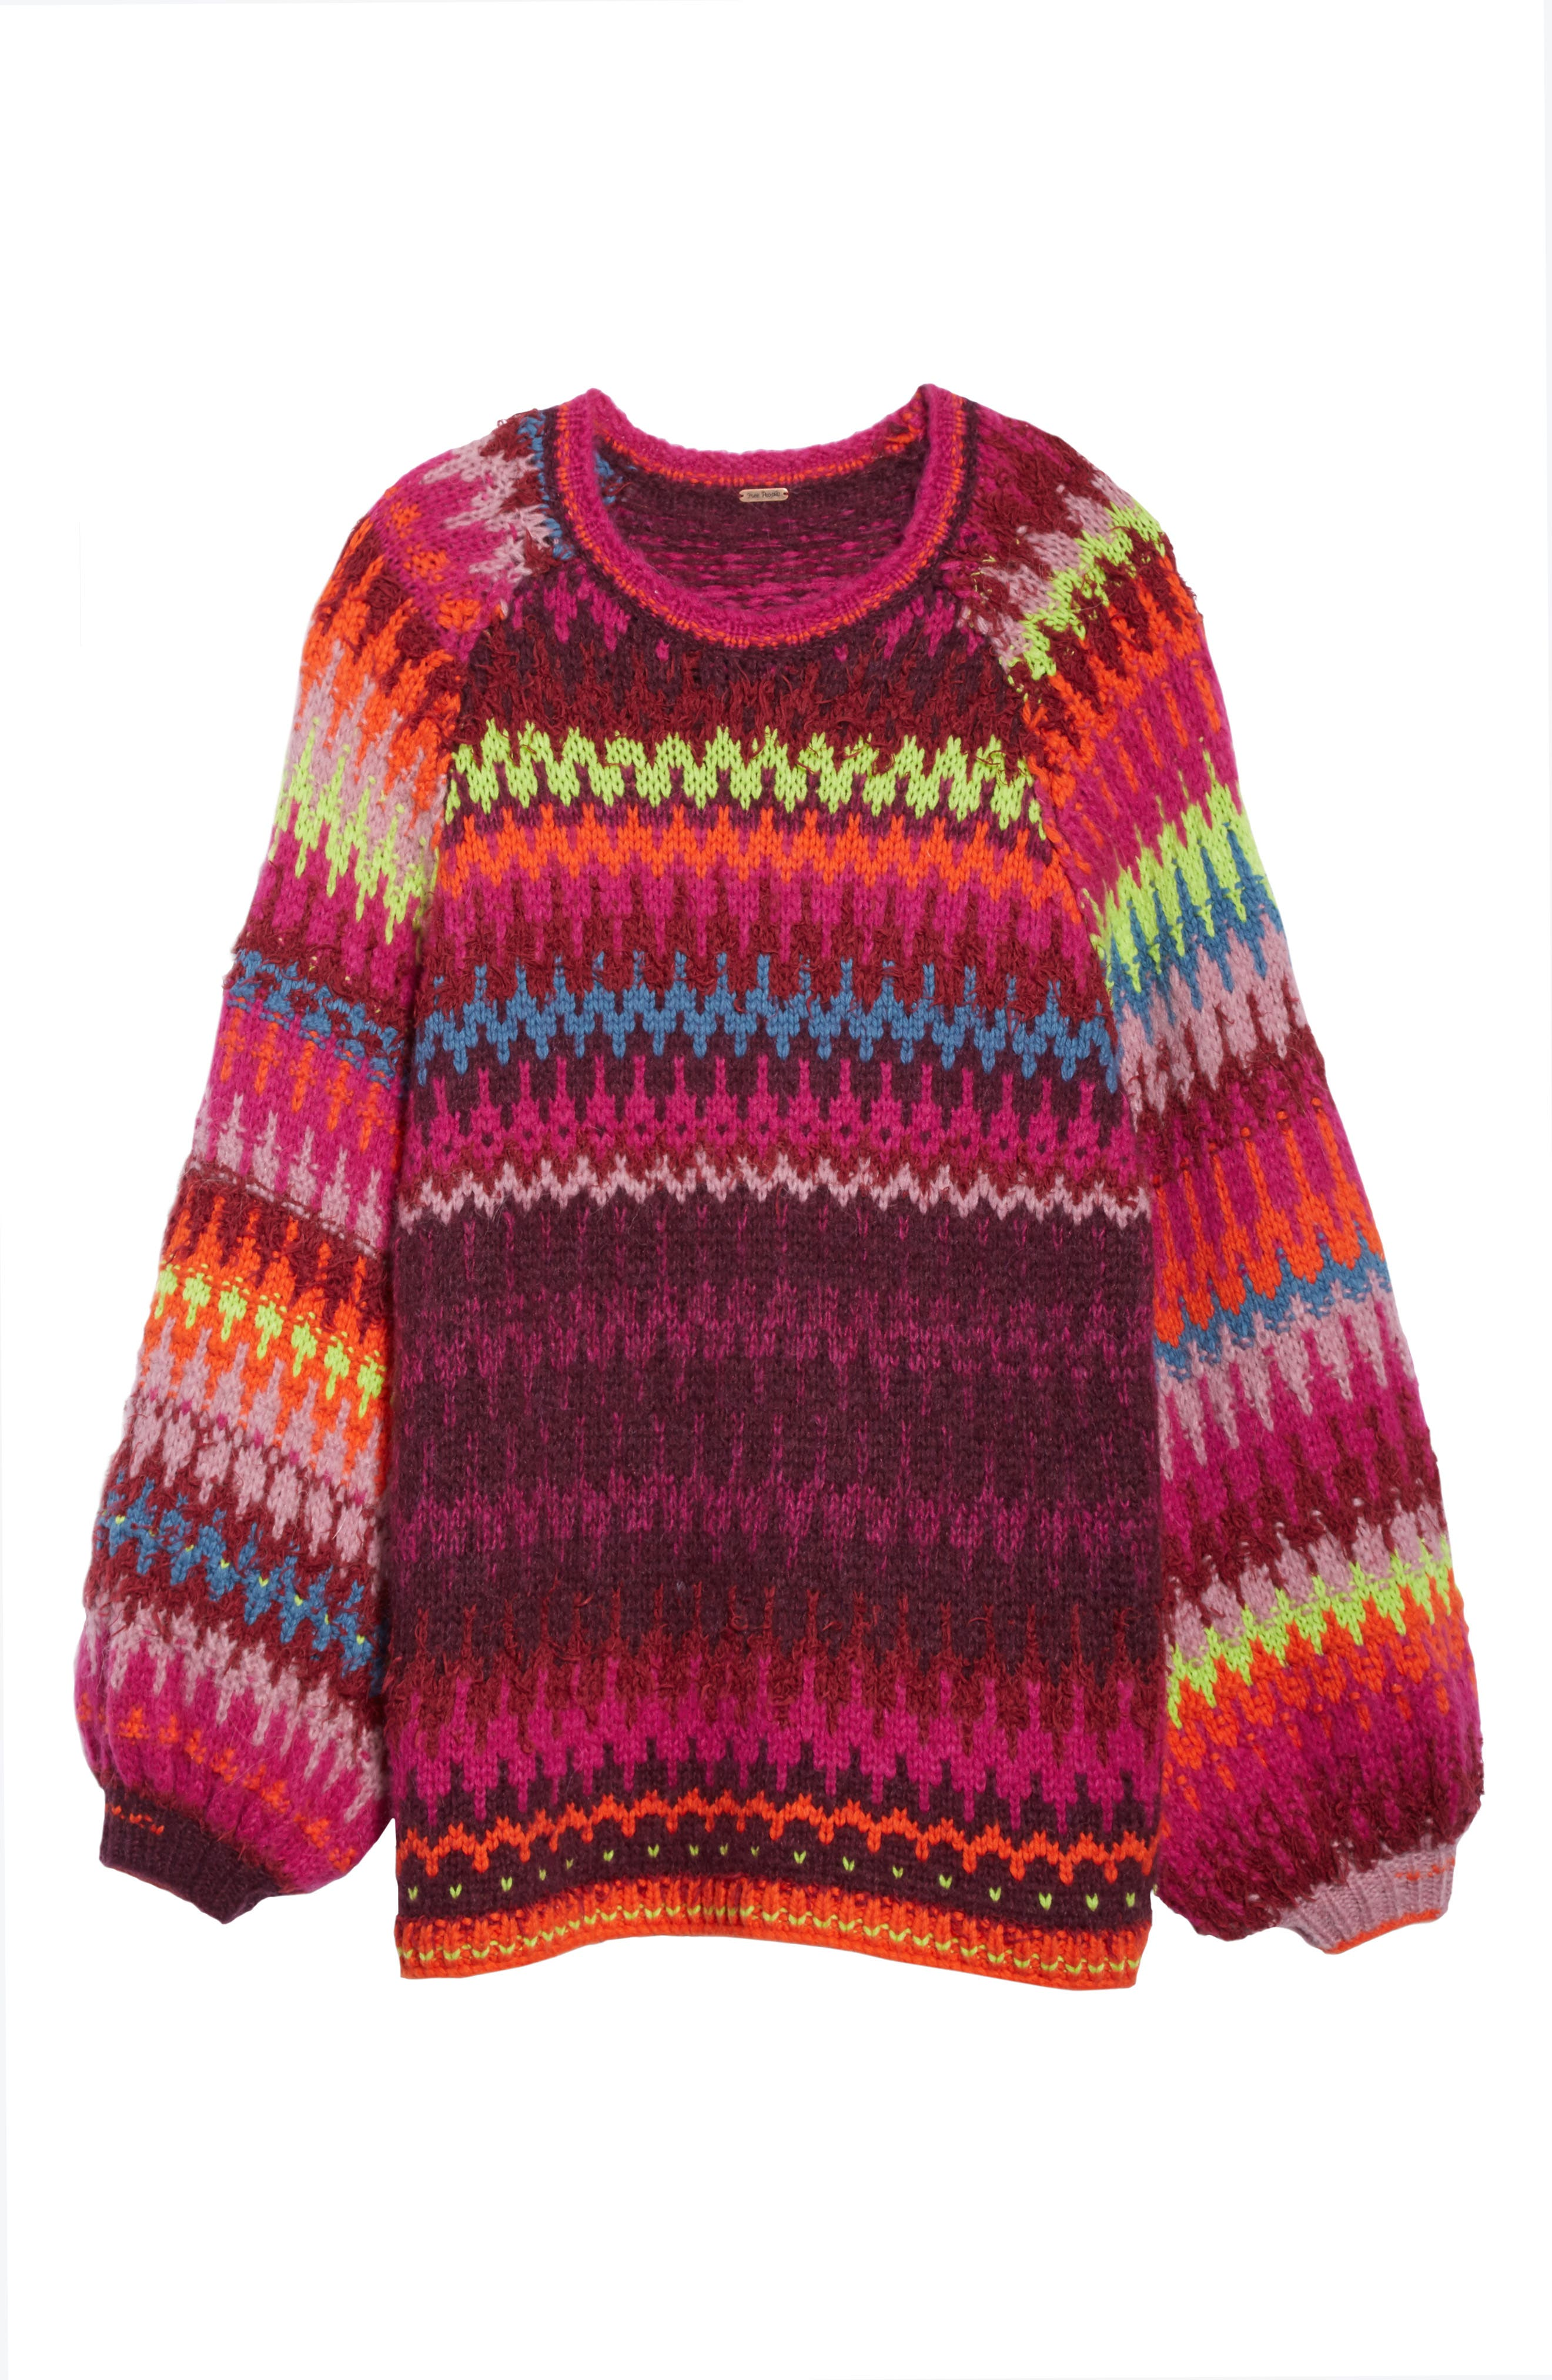 Castles in the Sky Sweater,                             Alternate thumbnail 6, color,                             697